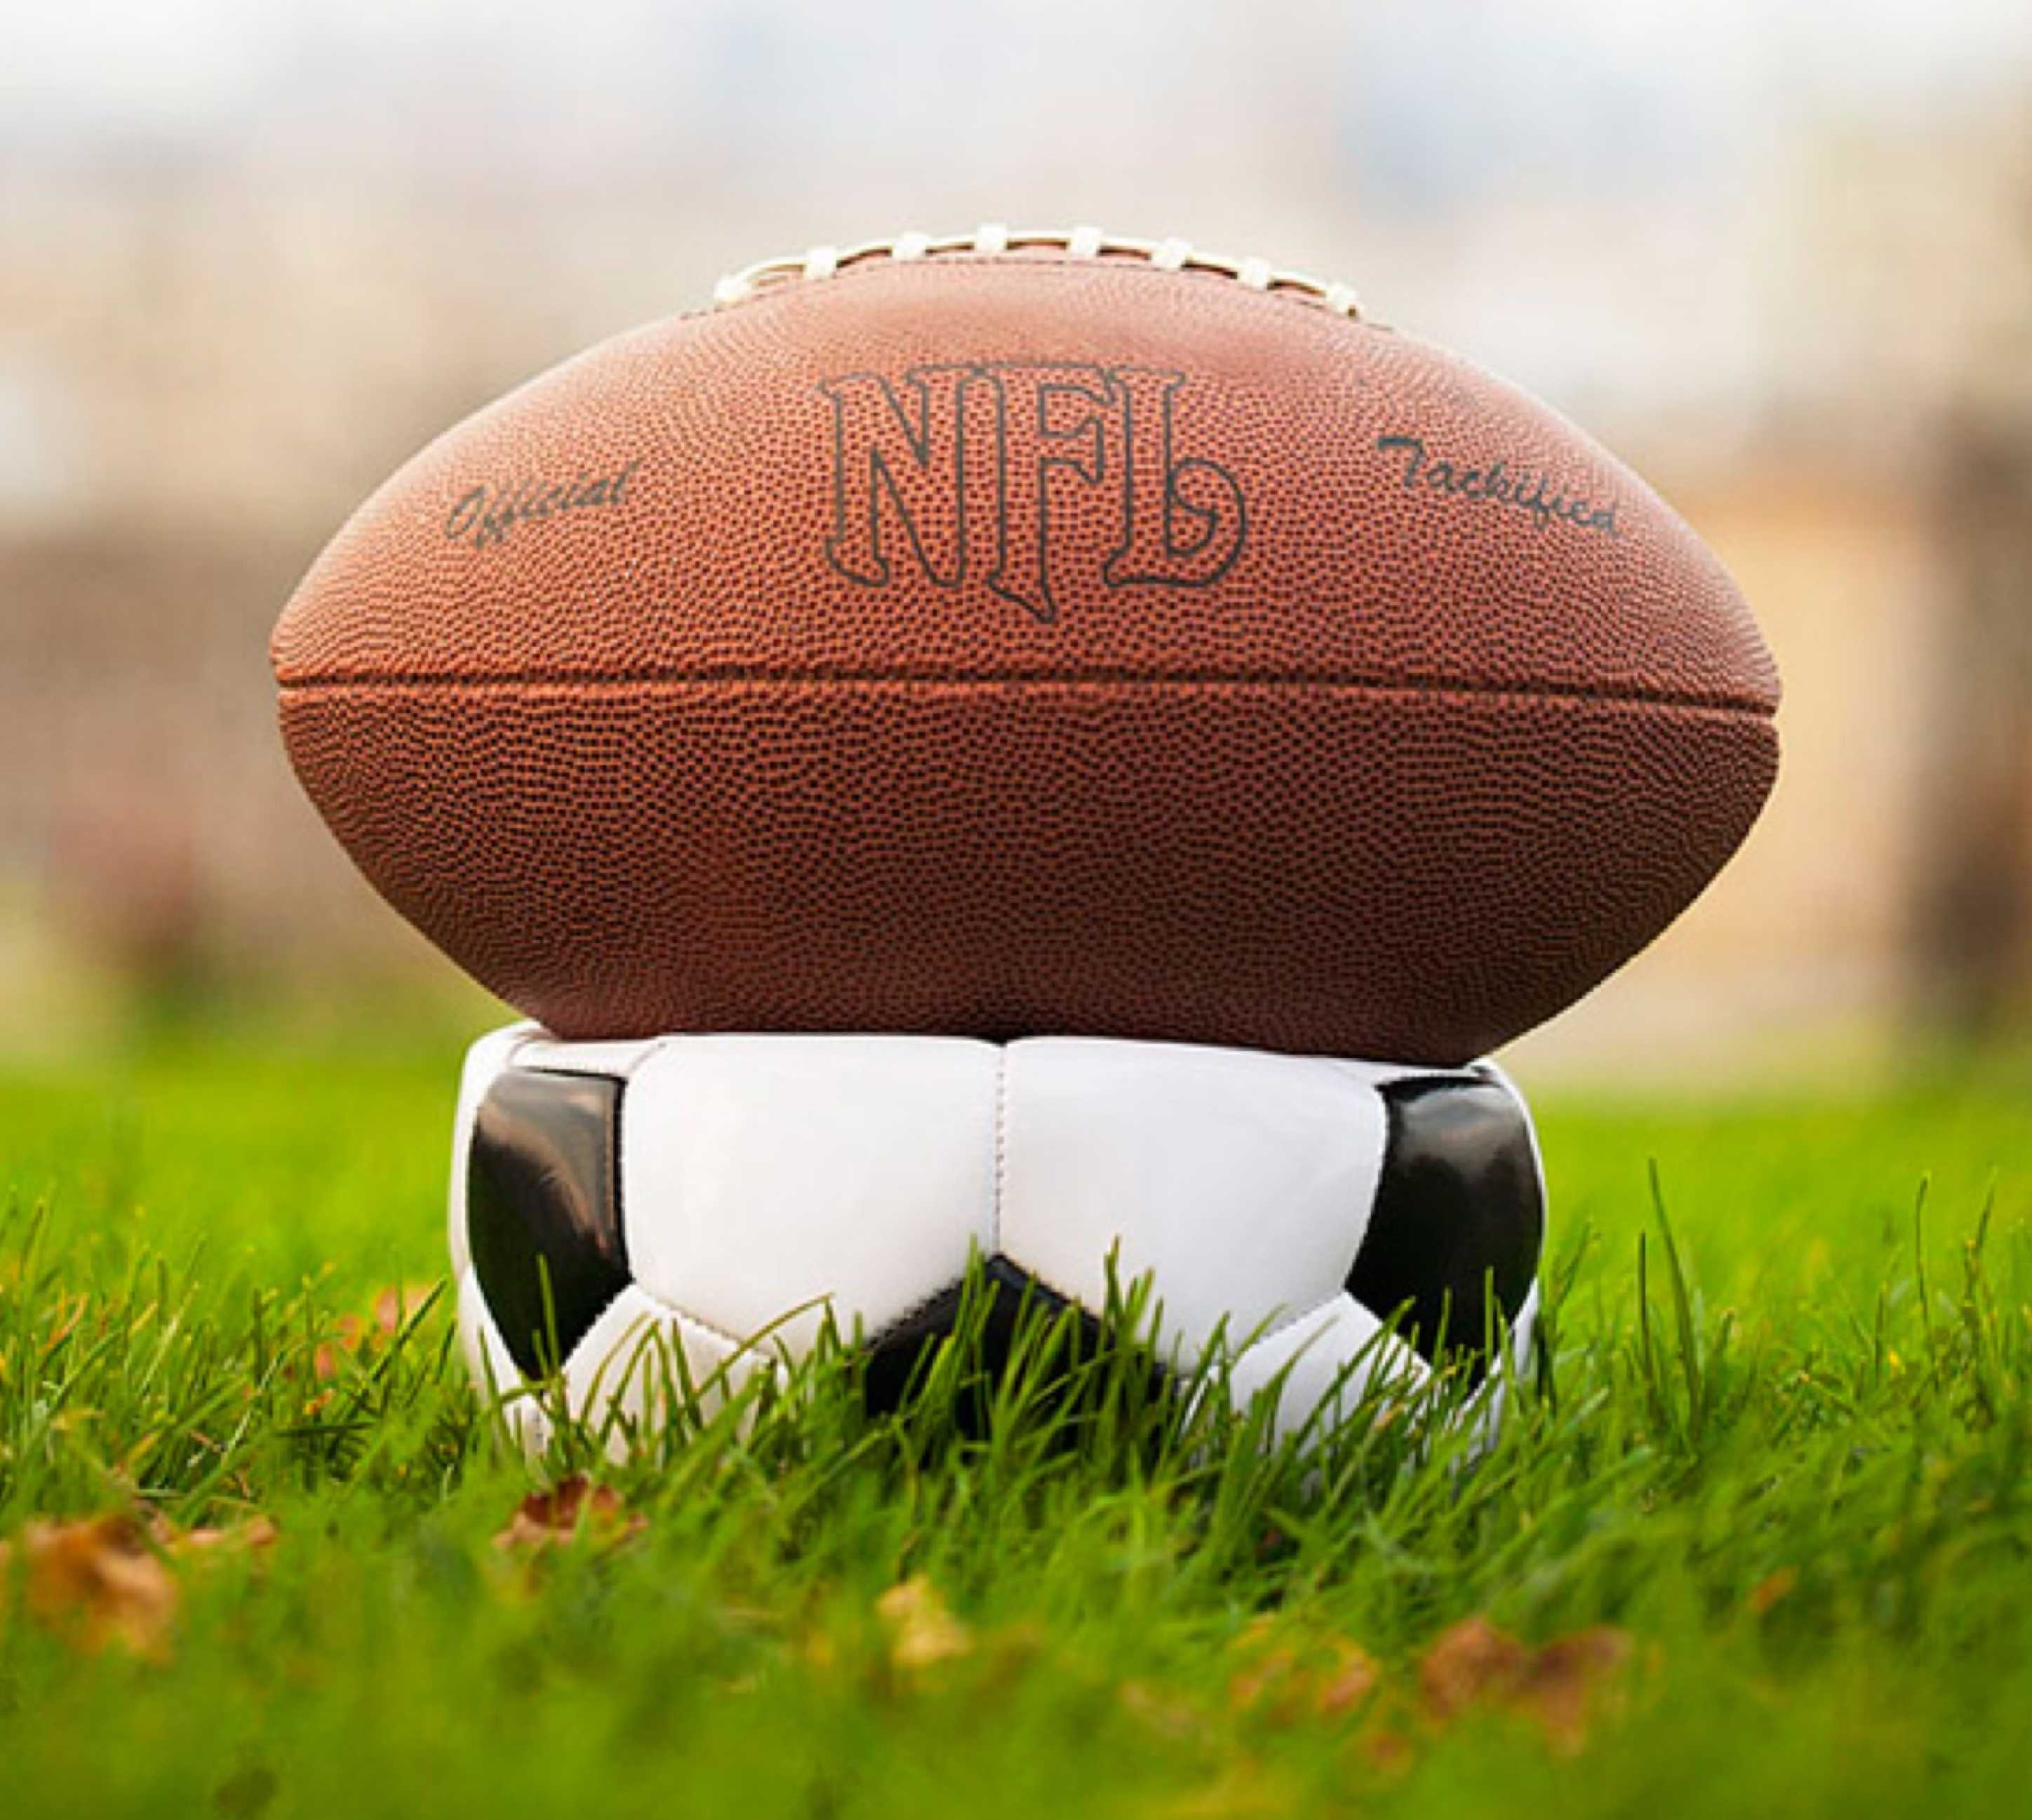 soccer vs american football essay View essay - football vs soccer from epmanc 320 at university of newcastle compare and contrast soccer and american football soccer and american football are two.